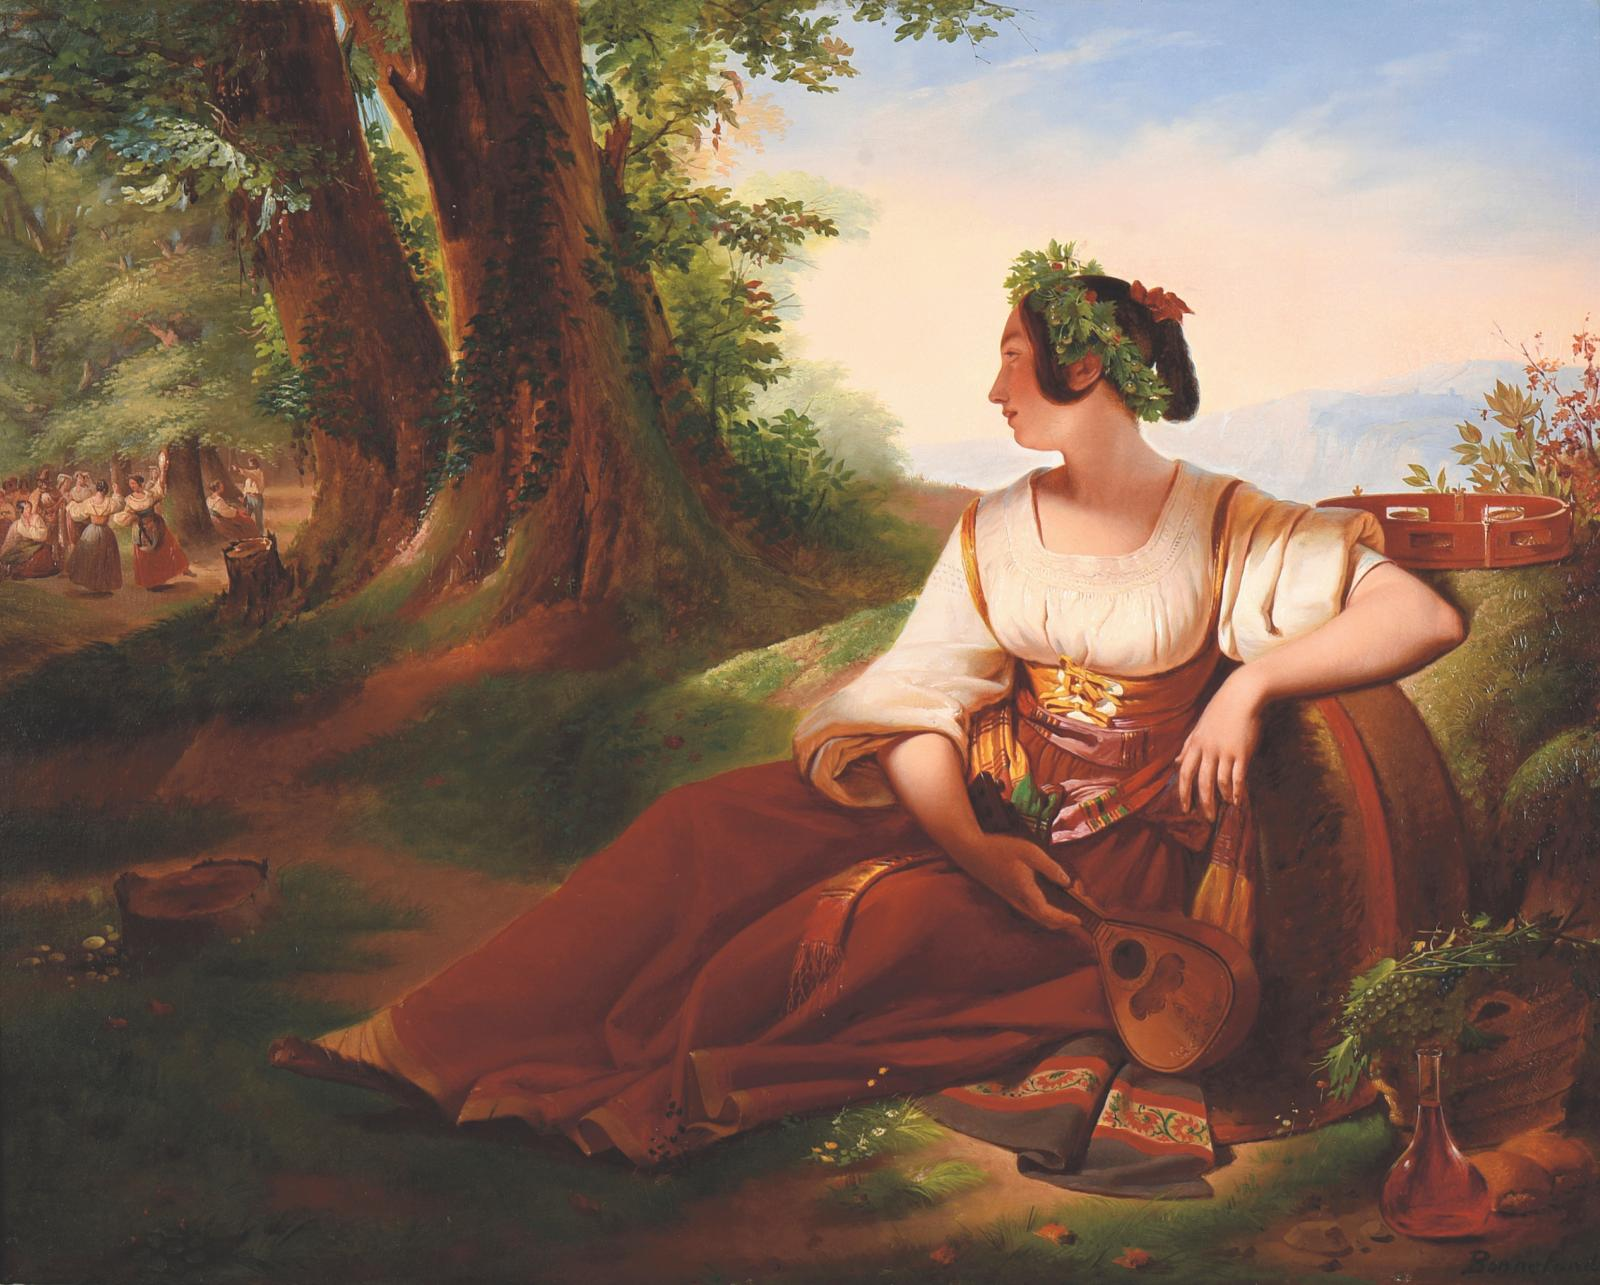 Claude Bonnefond (1796-1860), Waiting, oil on canvas, signed and titled 66 x 83 cm.Estimate: €7,000/10,000